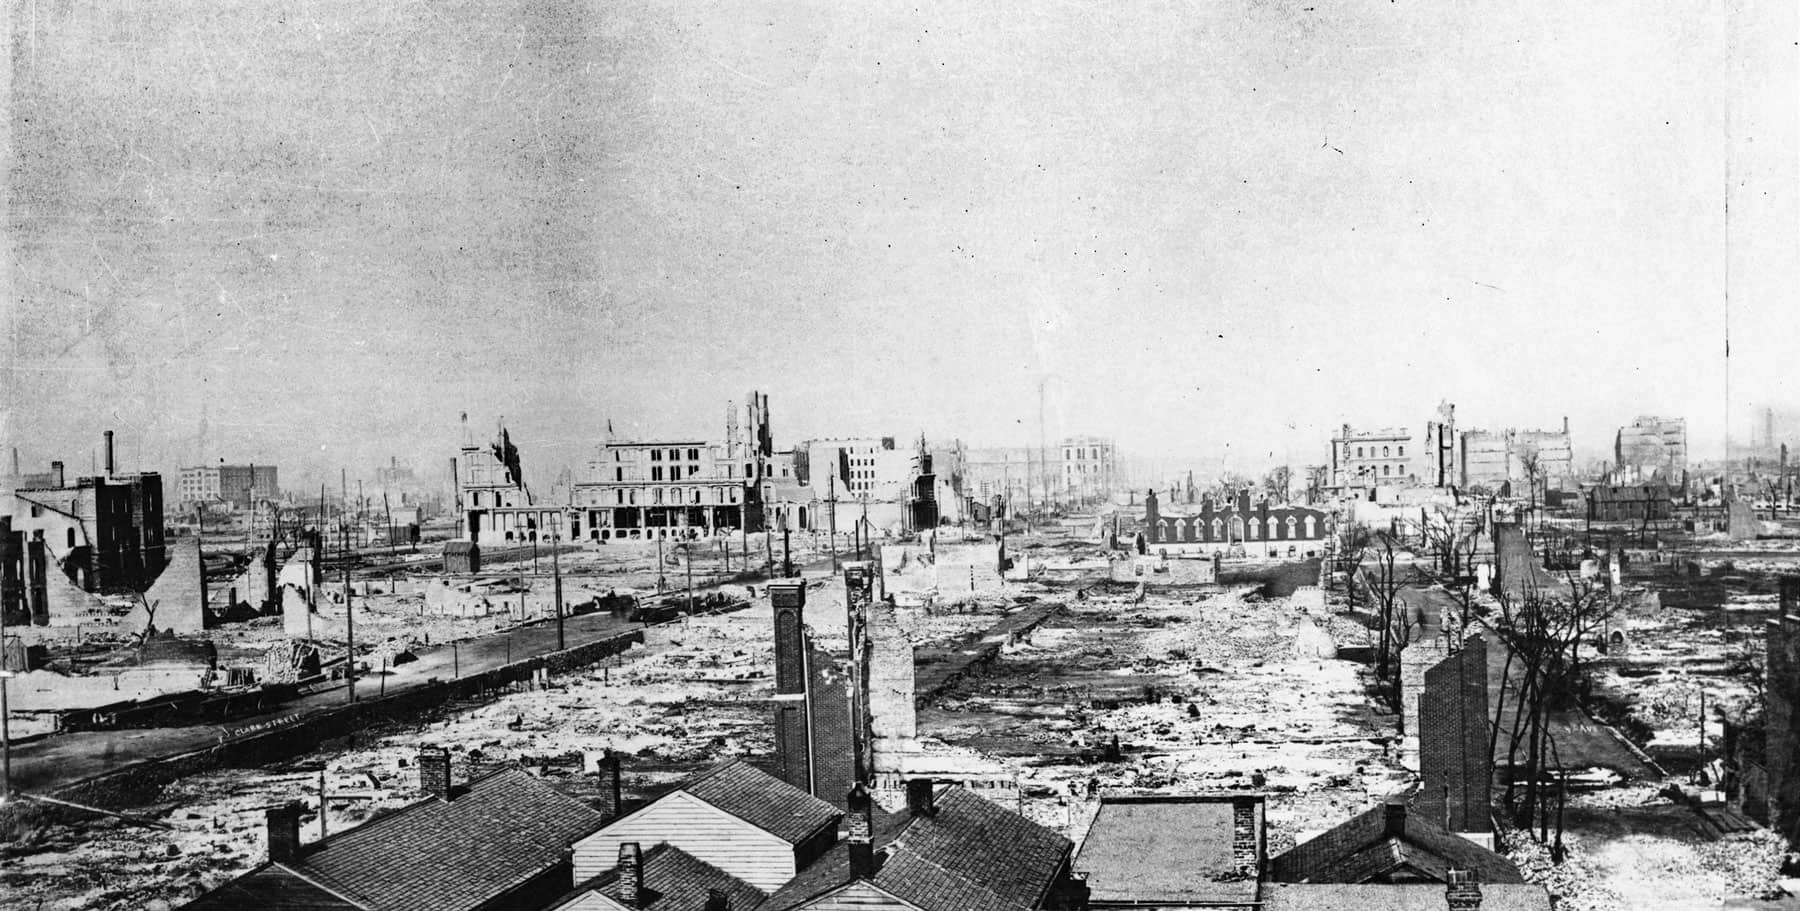 Photo of ruins of the Chicago Fire